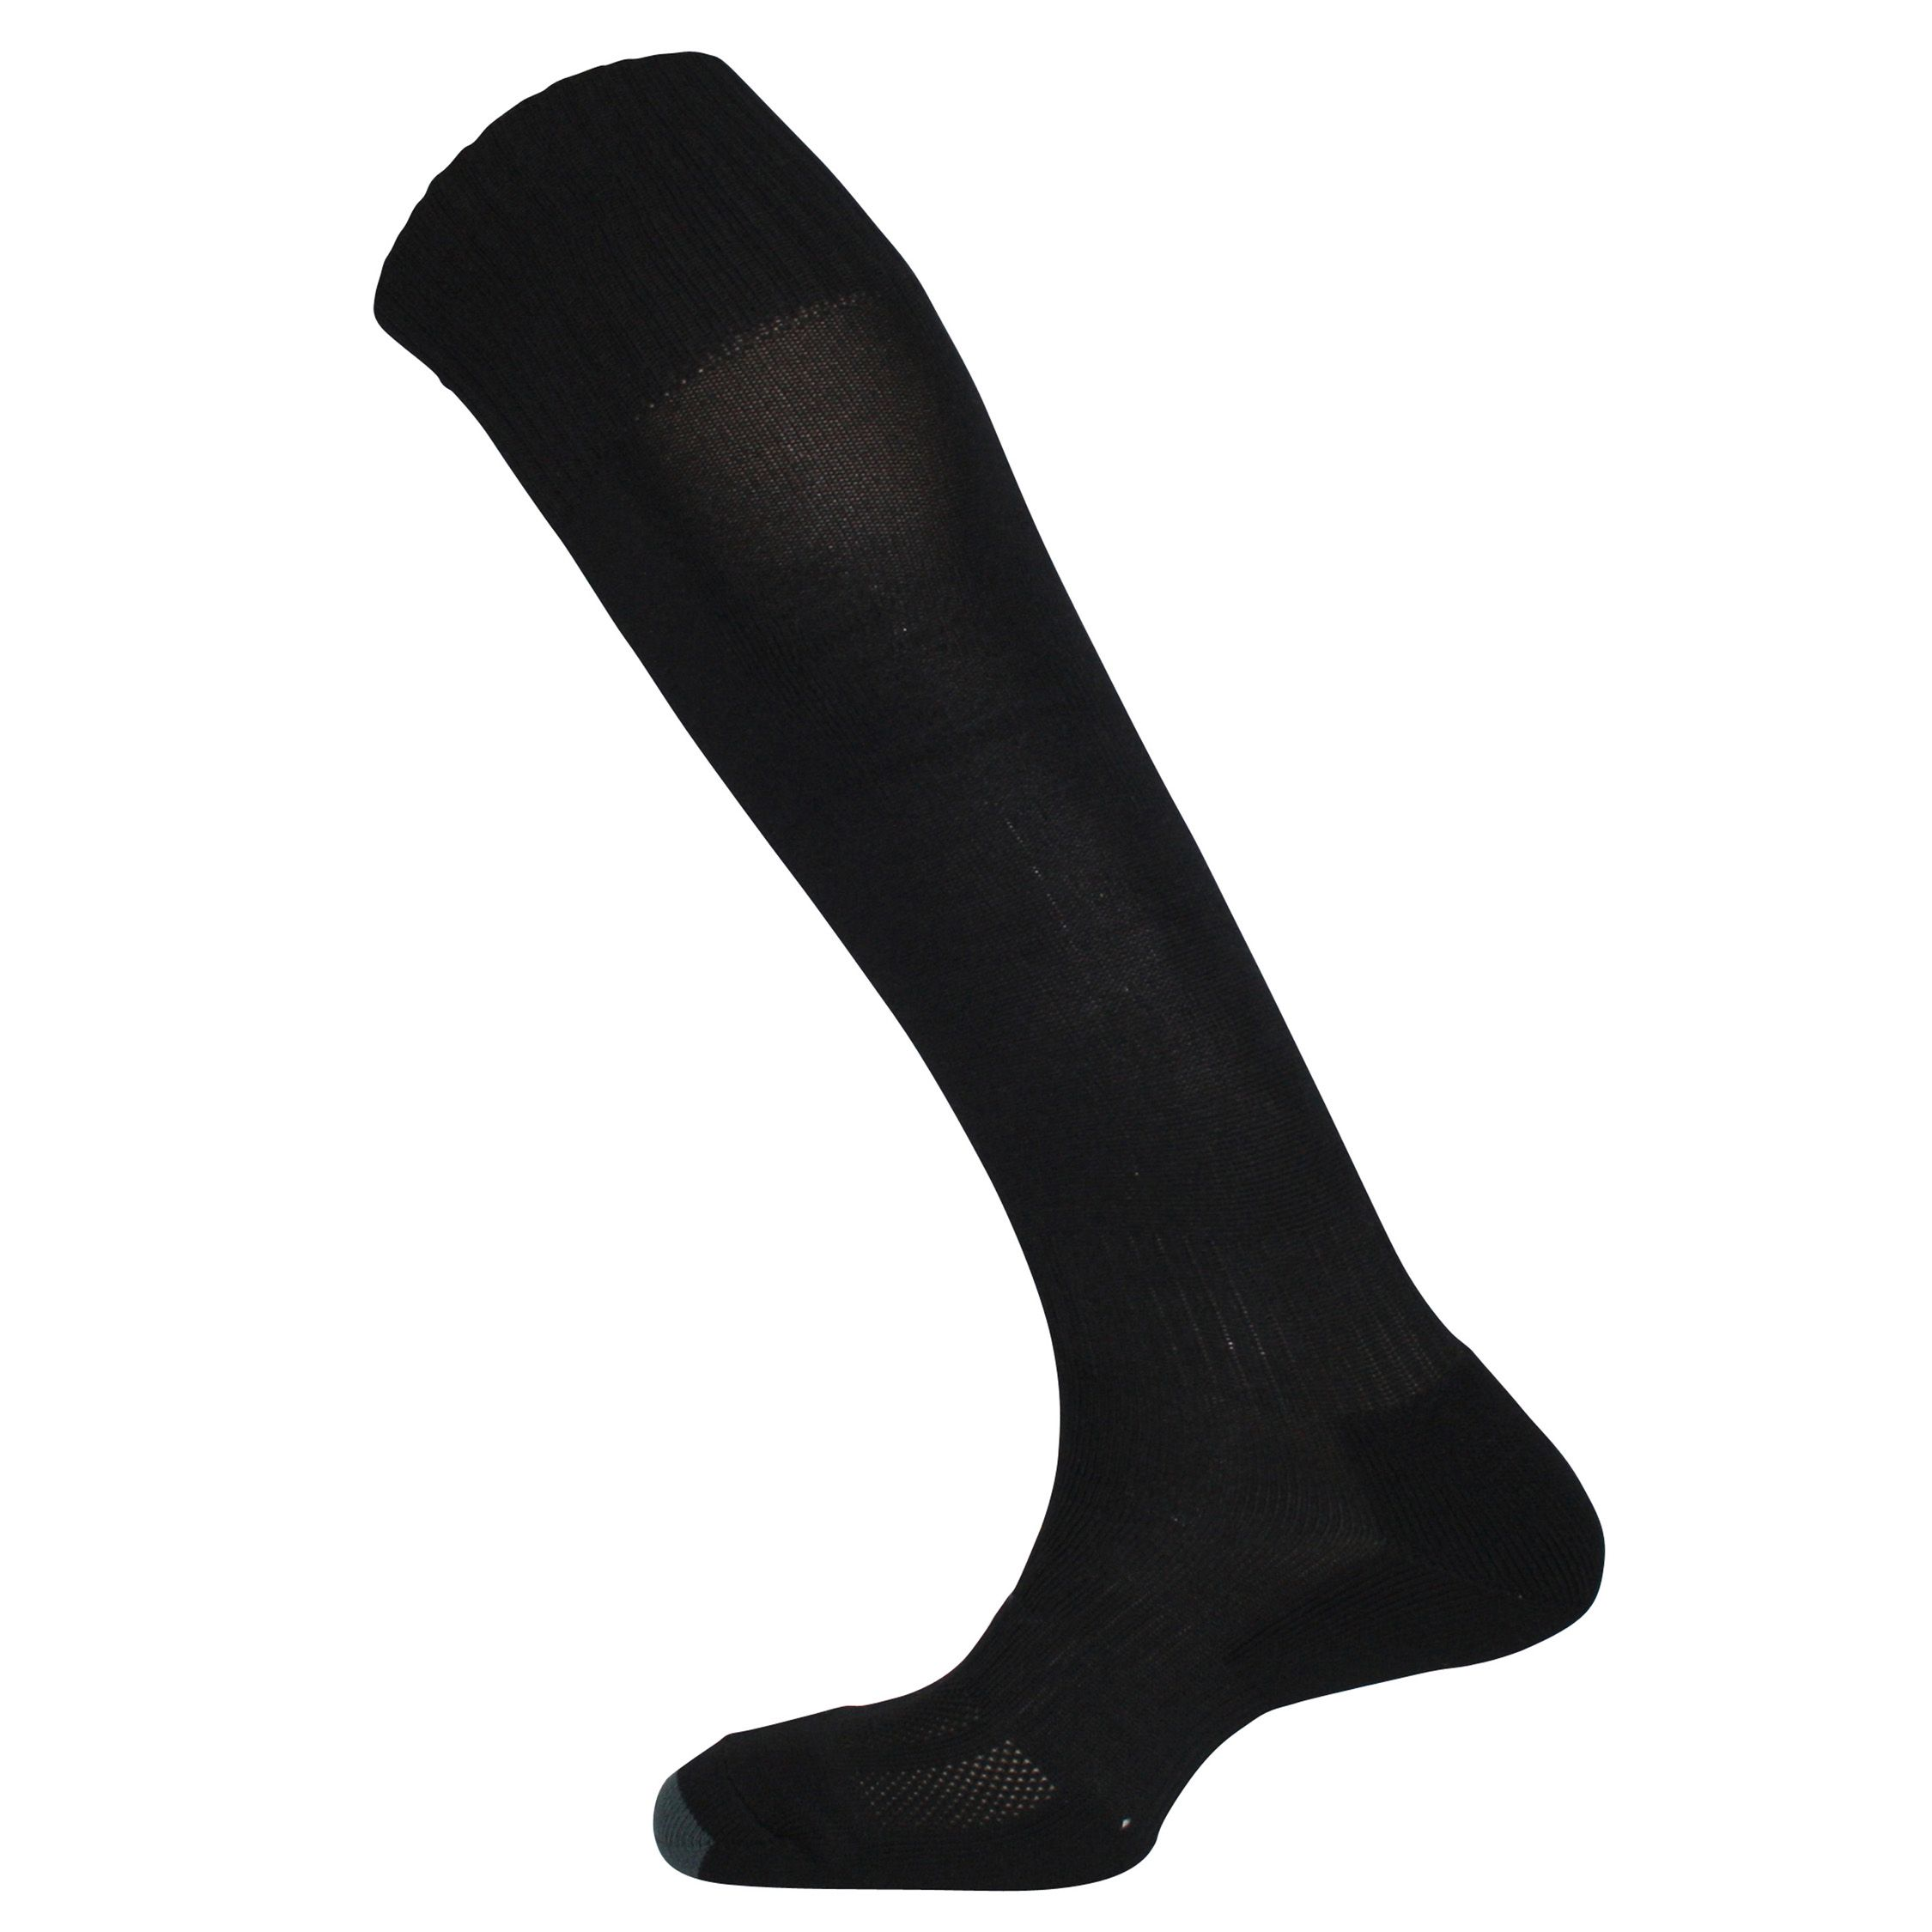 Prostar Prostar Games Socks, Black